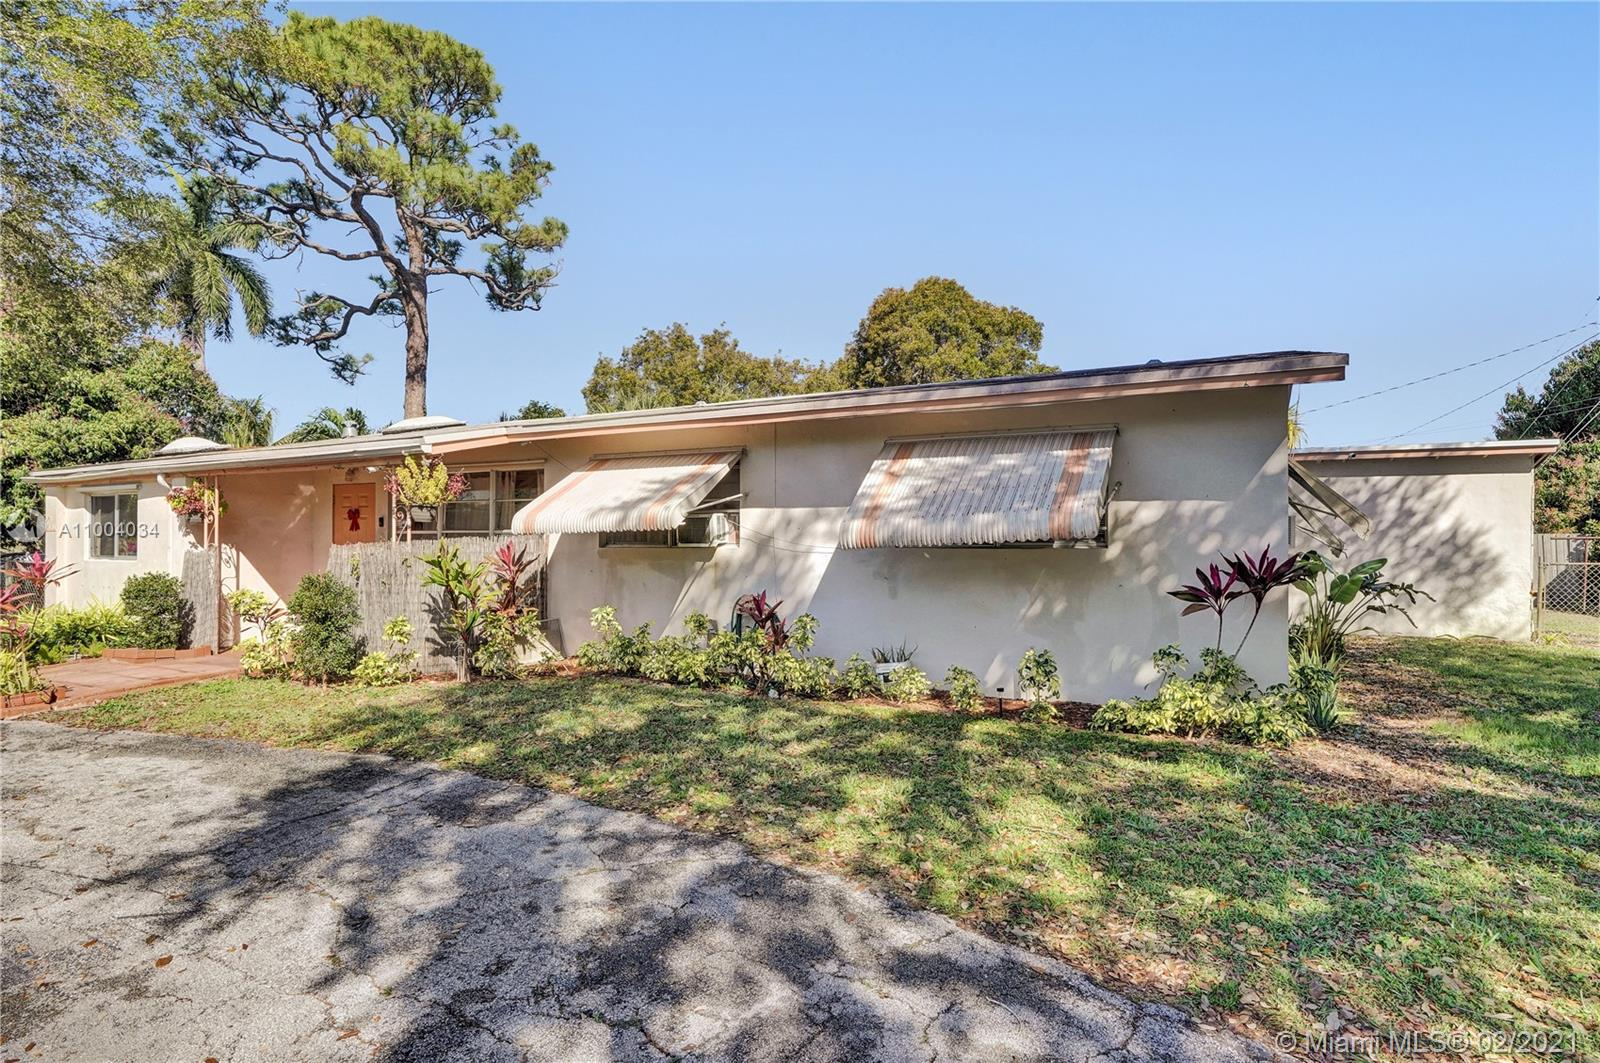 GREAT LOCATION IN SOUGHT AFTER WILTON MANNORS AREA. LARGE CORNER LOT WITH A POOL. GREAT AND QUIET NEIGHBOURHOOD. CLOSE TO FORT LAUDERDALE DOWNTOWN AND BEACHES. This is an Estate Sale and the home needs updating.